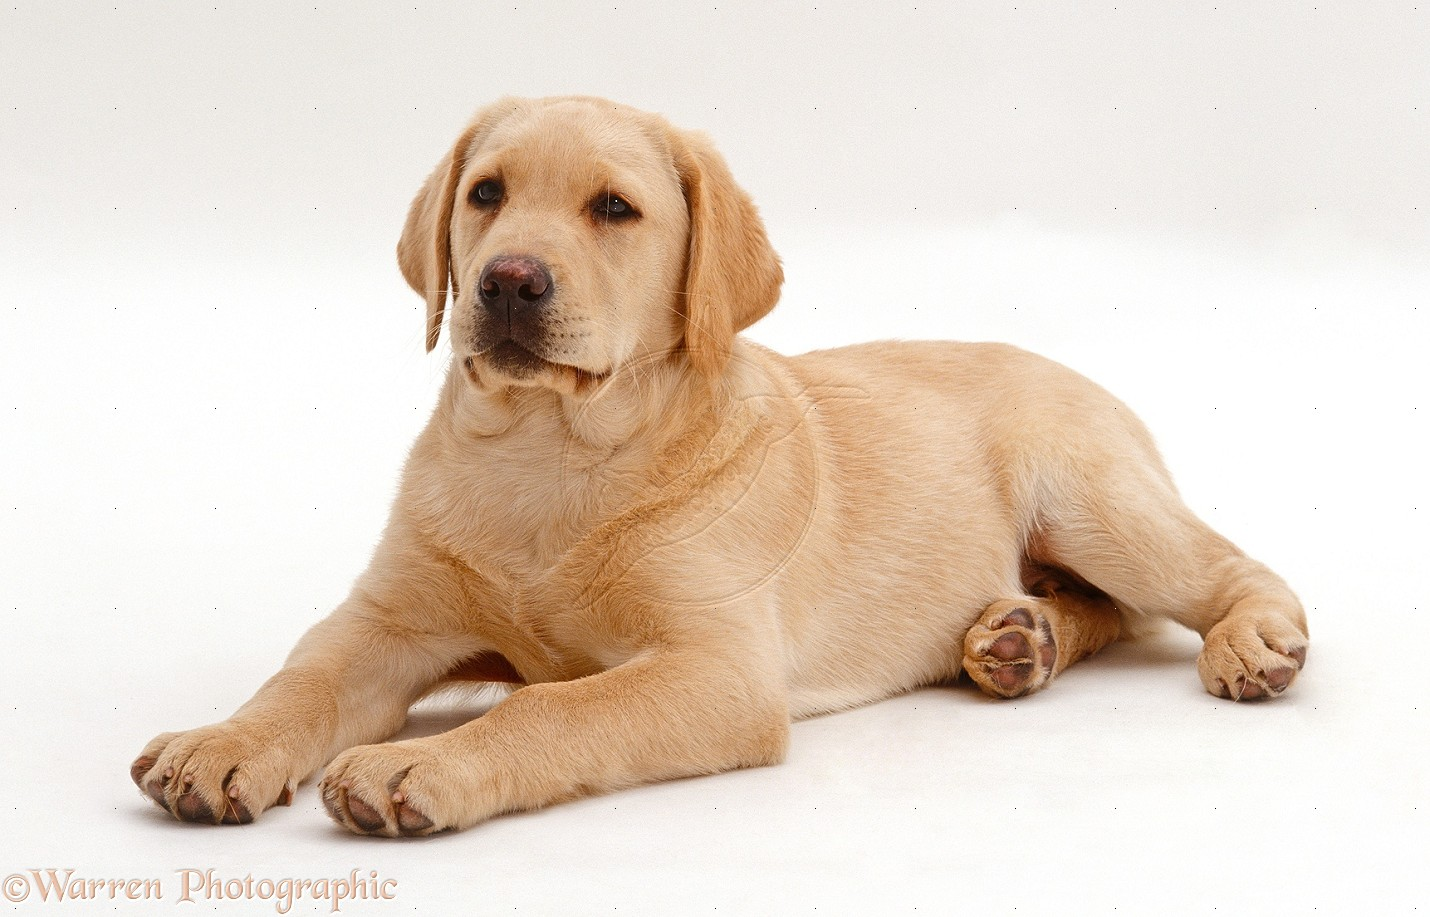 yellow labrador retriever puppy 169   Yellow Labrador Retriever Puppy 1430x917